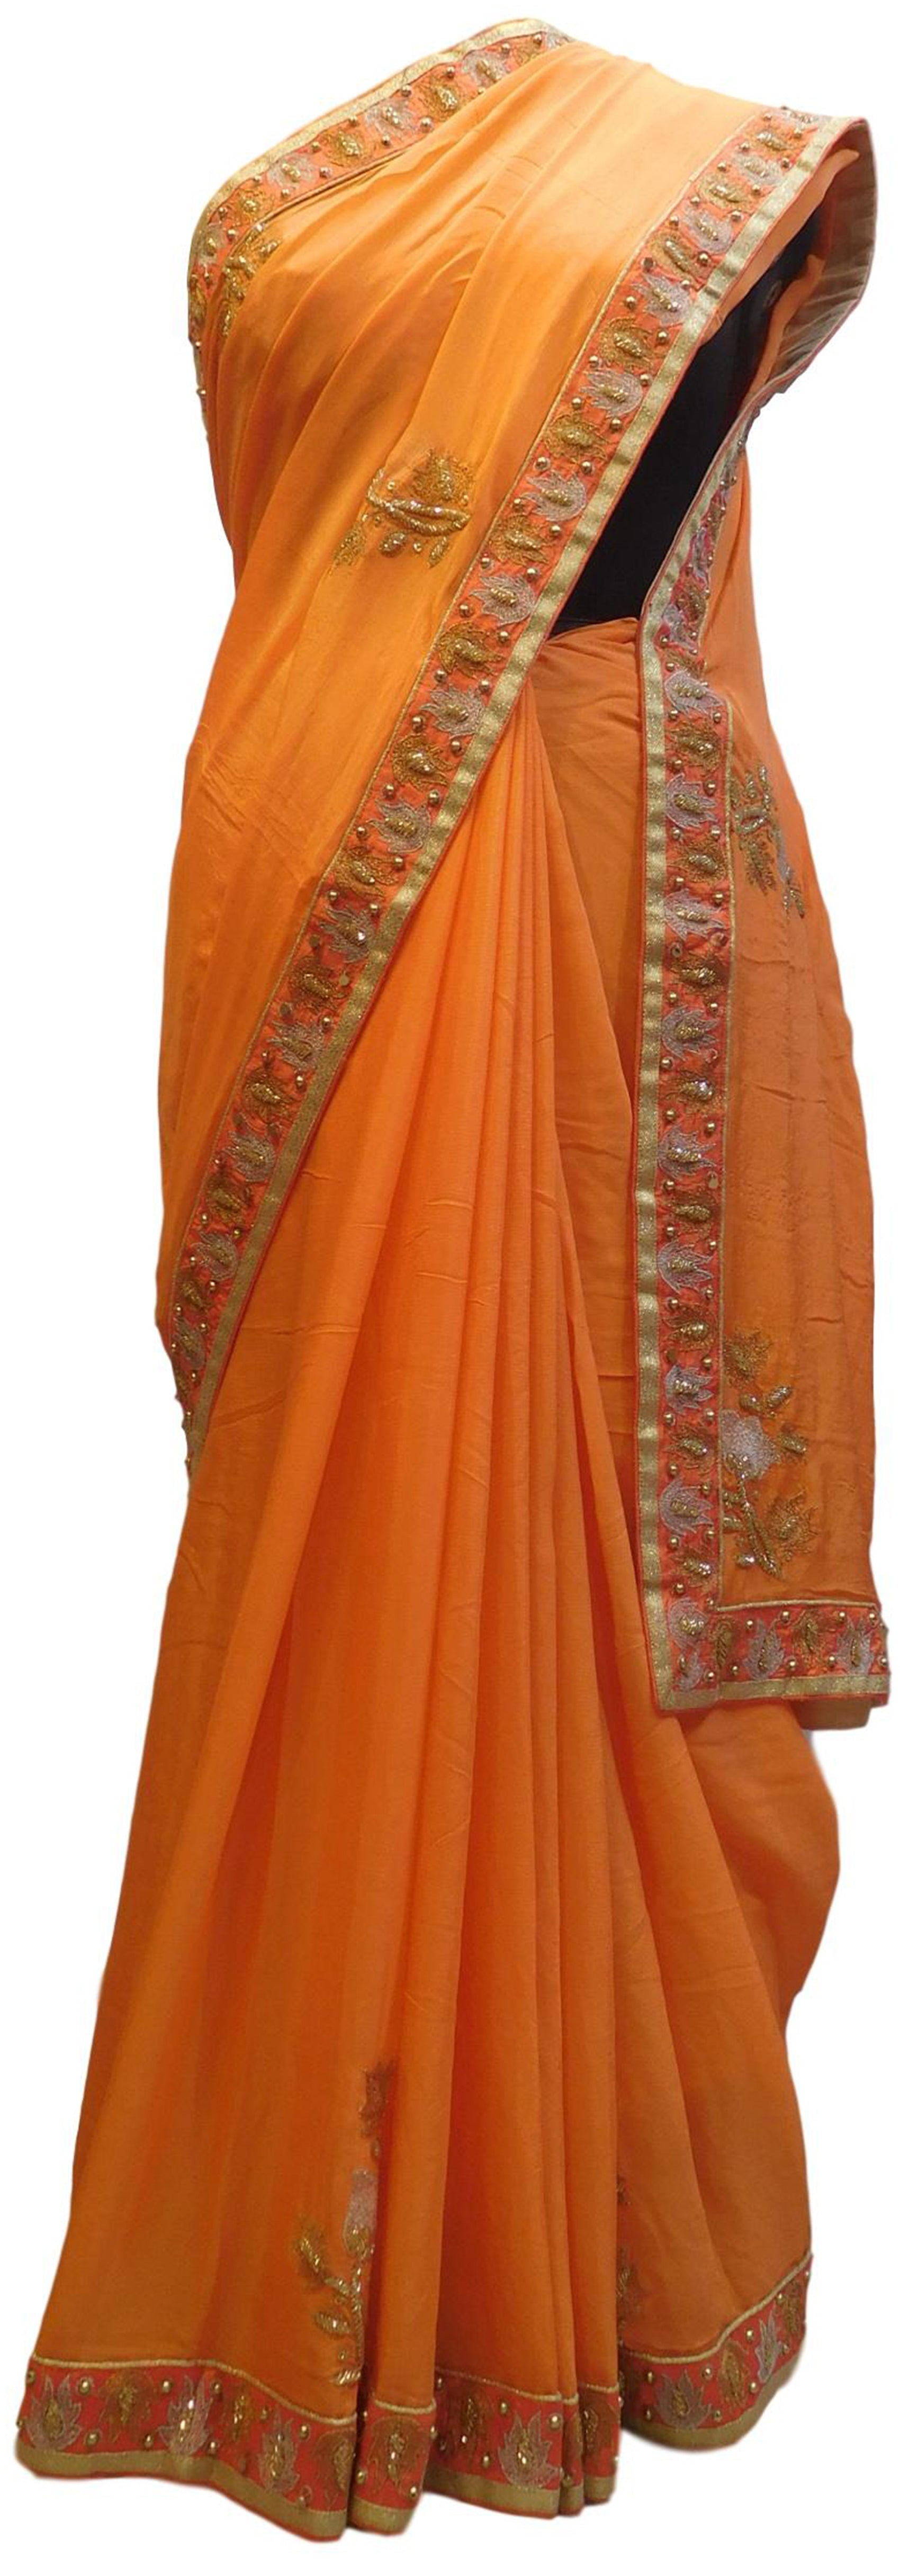 Peach Designer Wedding Partywear Crepe (Chinon) Thread Zari Cutdana Beads Hand Embroidery Work Bridal Saree Sari E080